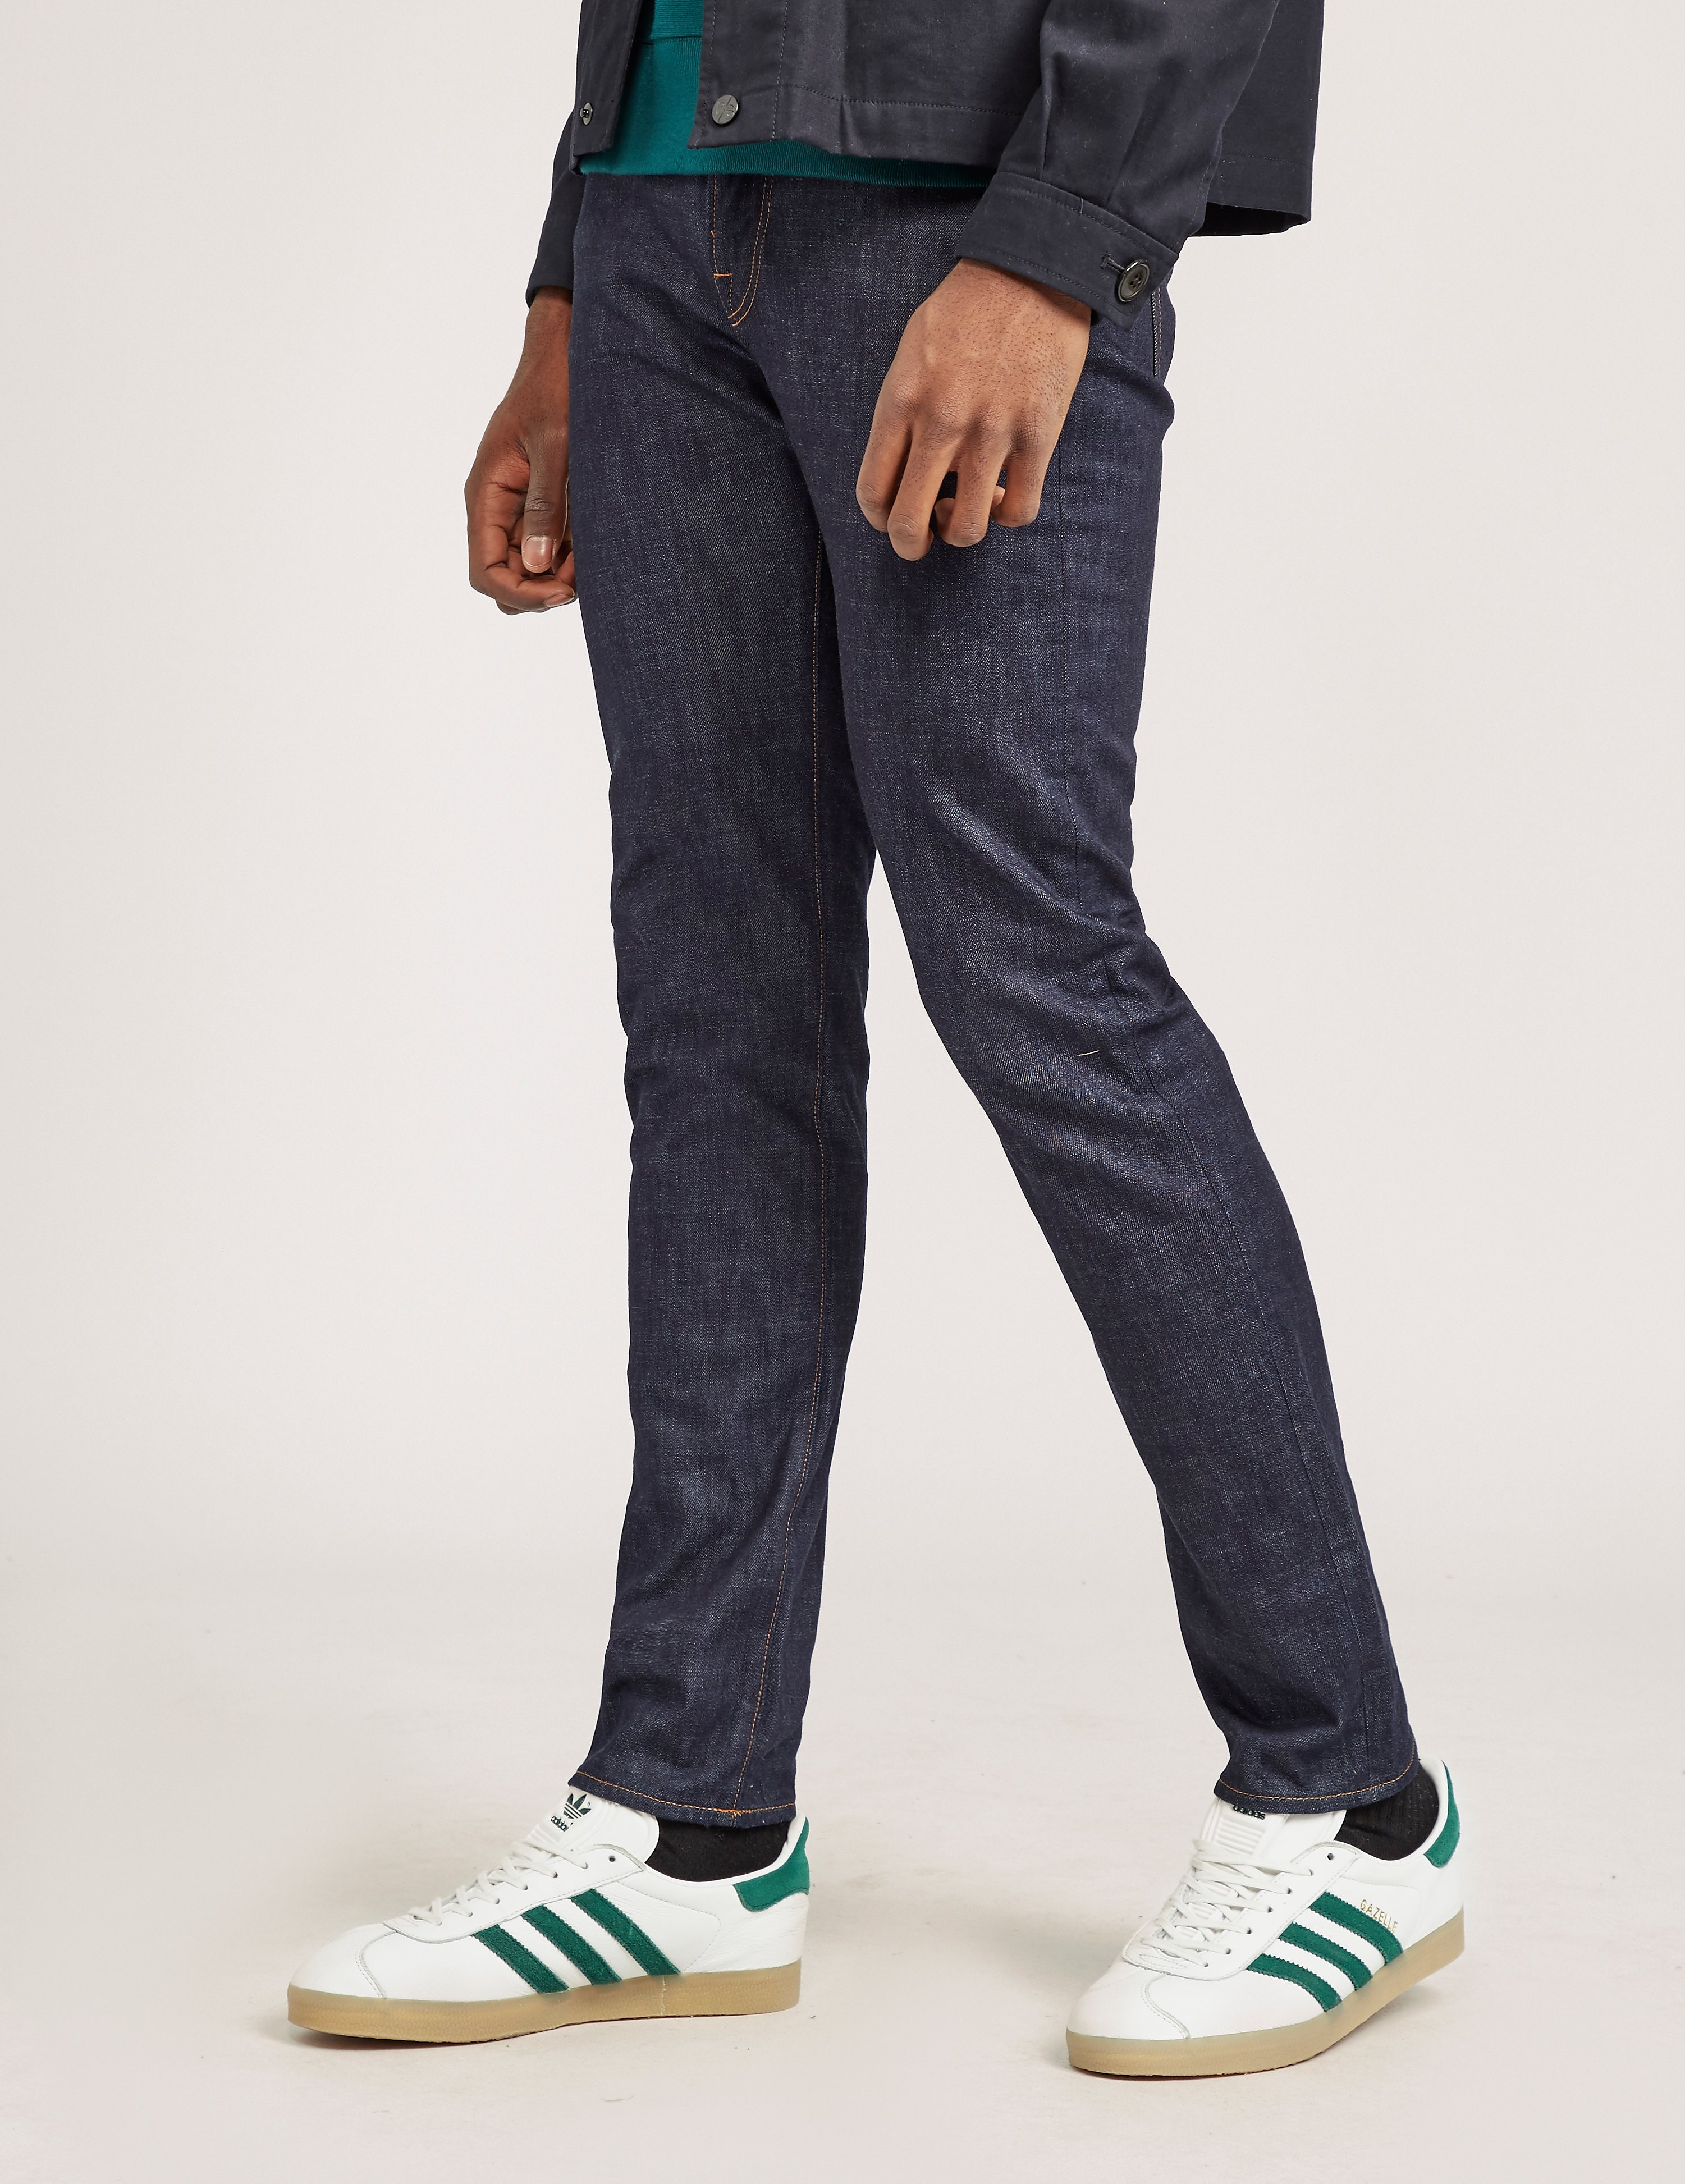 Paul Smith Slim Stretch Jeans